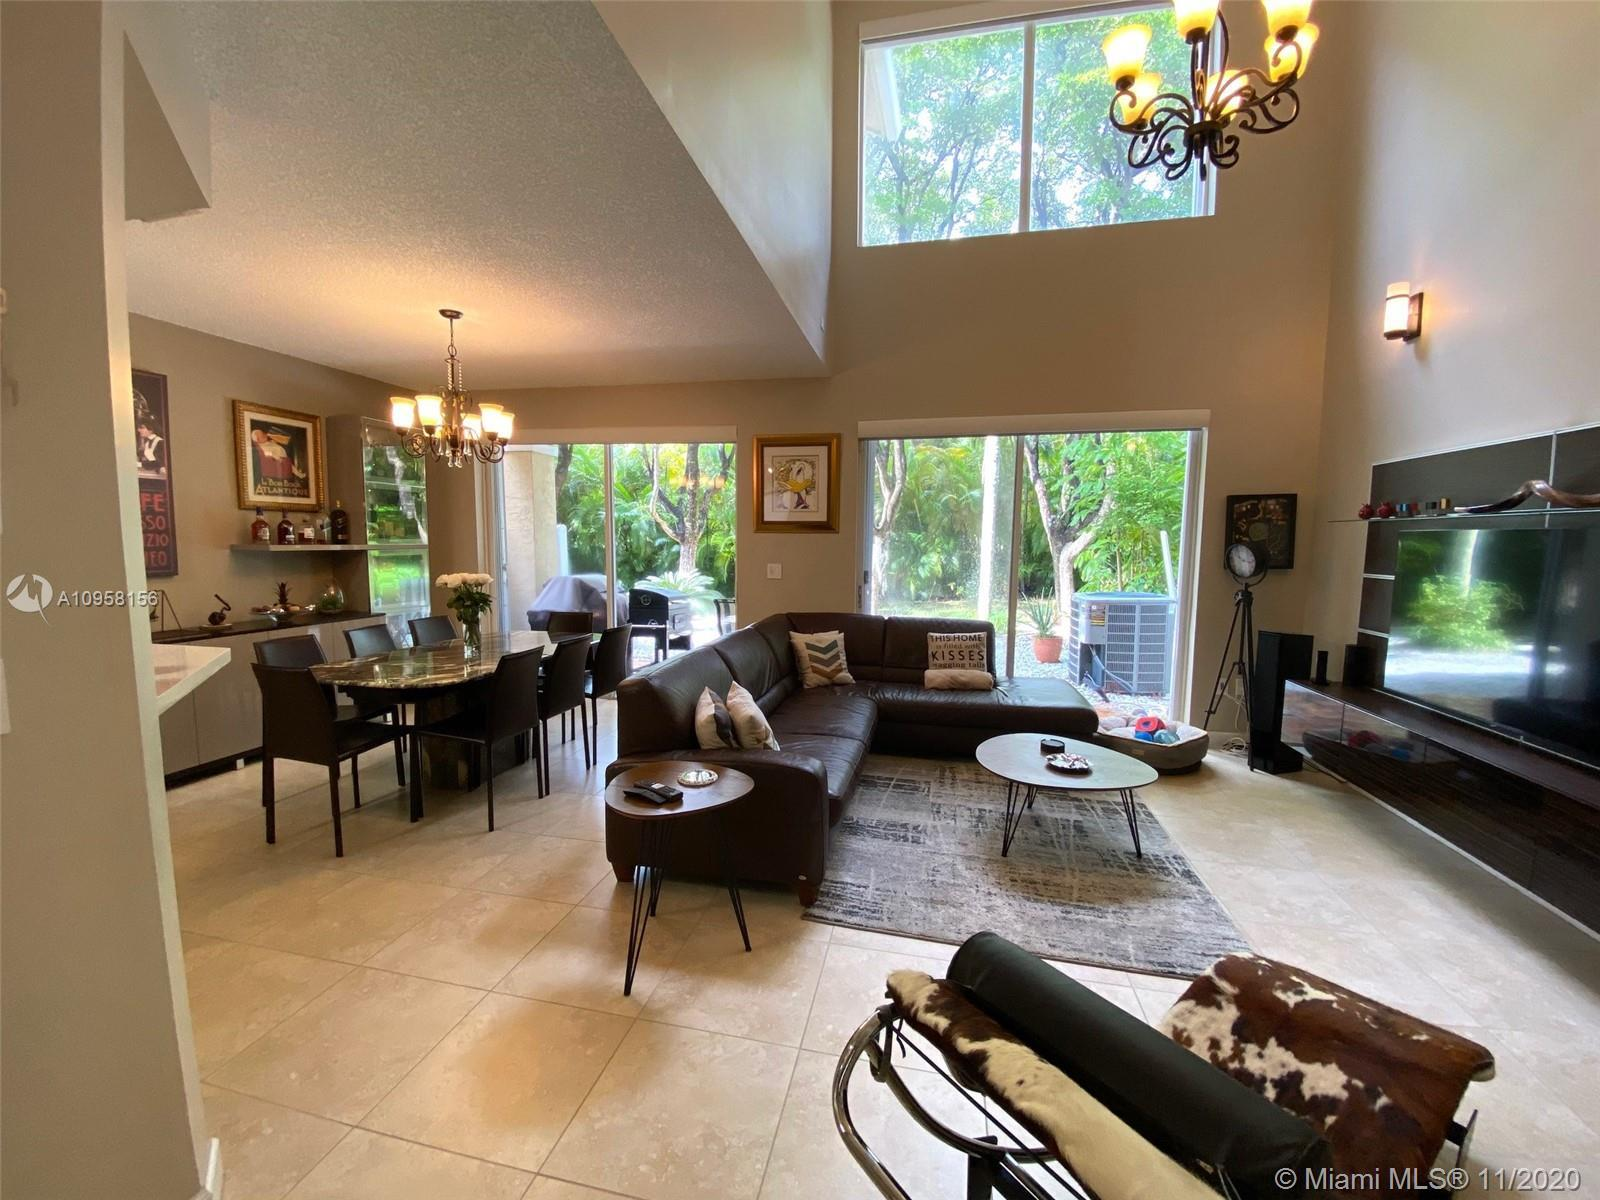 VERY BRIGHT & SPACIOUS TOWNHOUSE FOR SALE IN AVENTURA. 3 BEDROOMS - 2 1/2 BATHROOMS. HIGH CEILINGS -